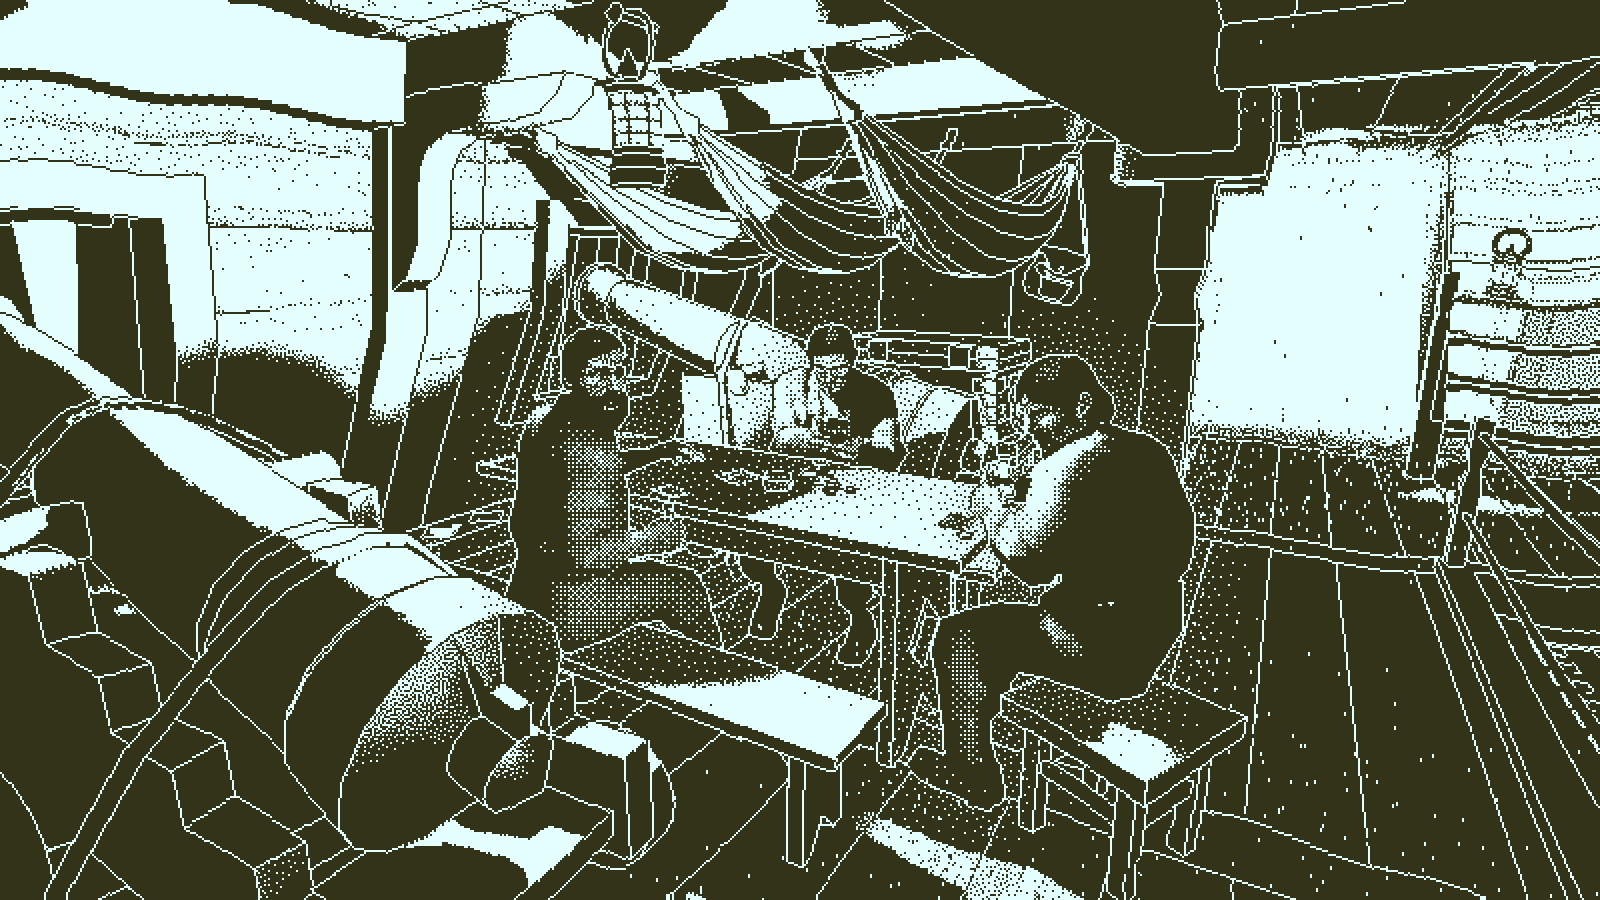 narrative design improves interactive storytelling in video games 2010s decade Return of the Obra Dinn